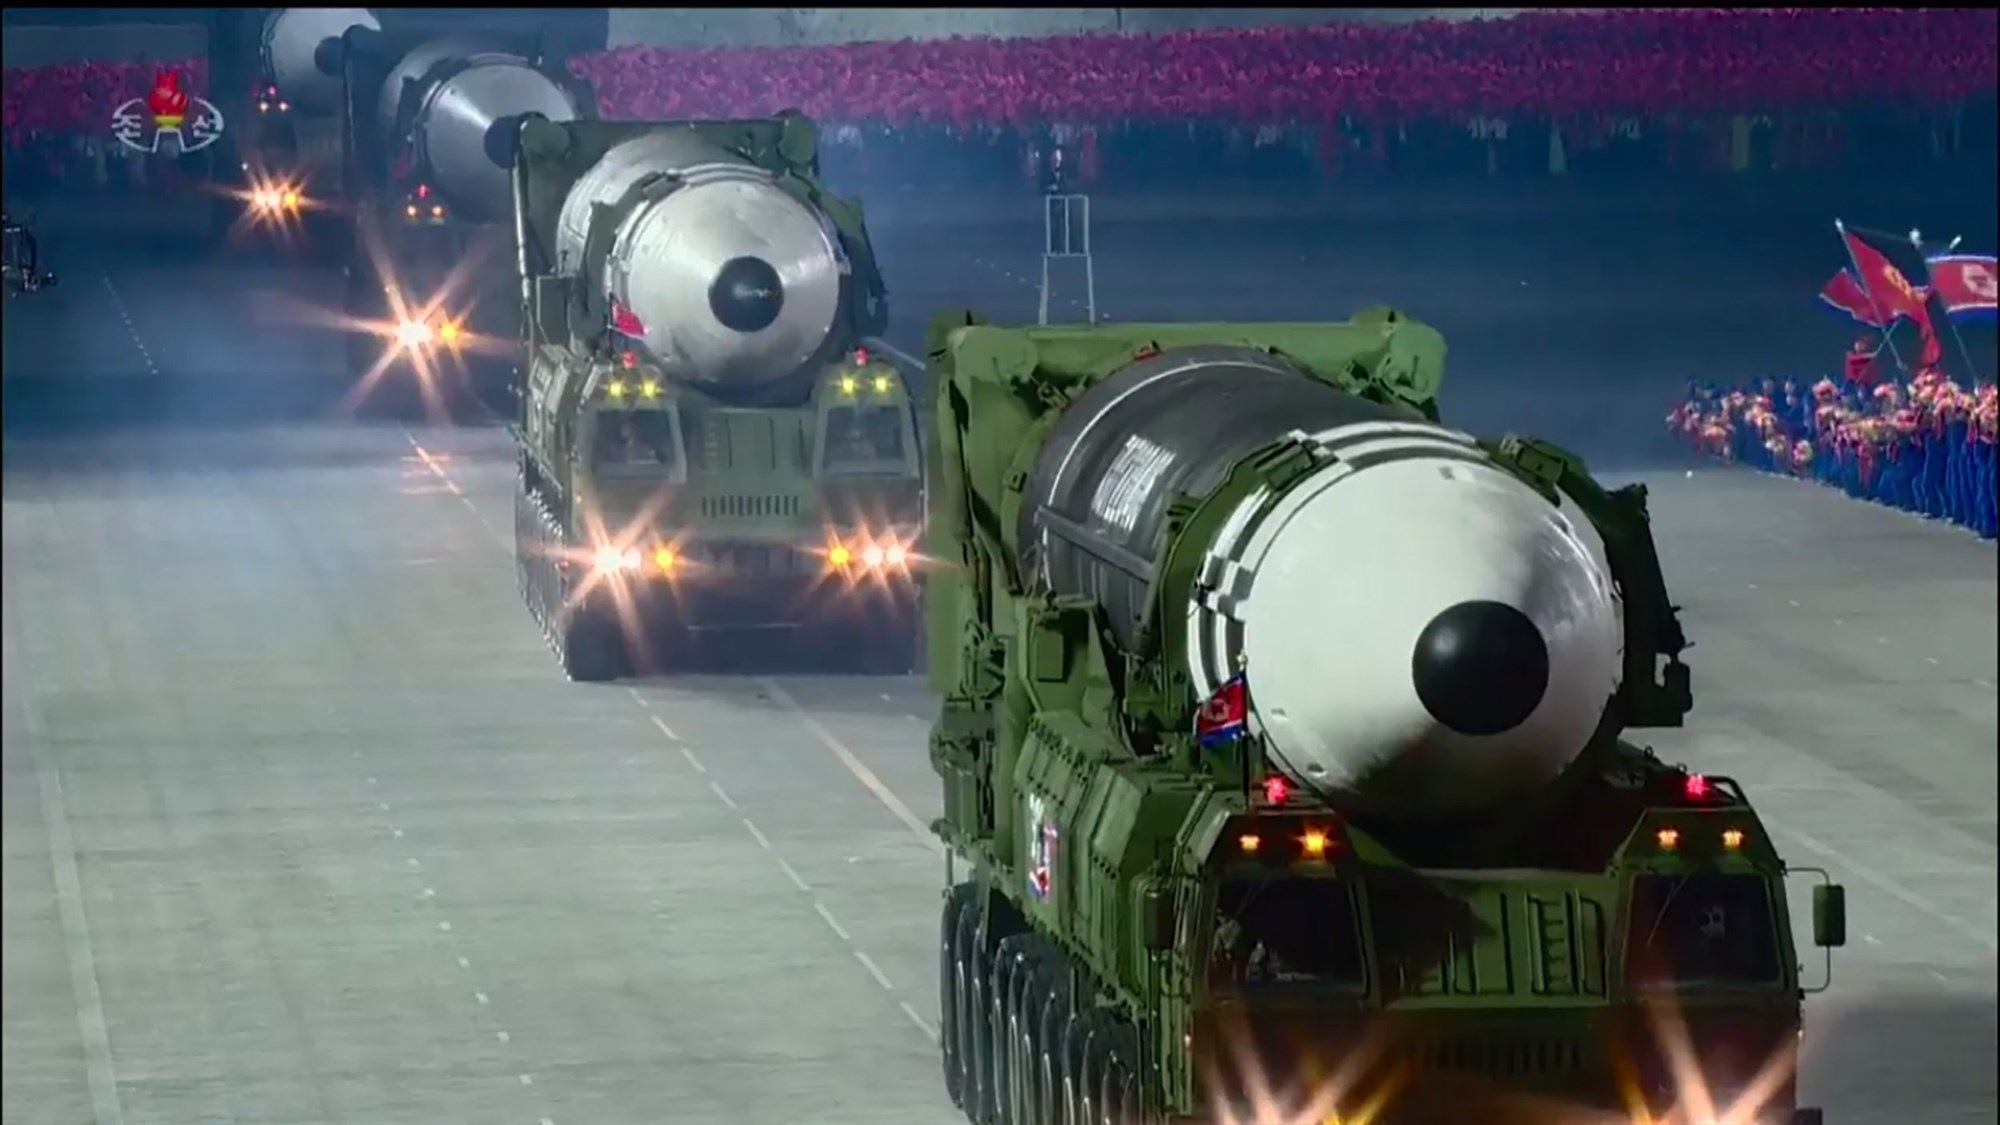 Hwasong_15_intercontinental_ballistic_missiles_foto_from_joseon_tv_2020_10.jpg